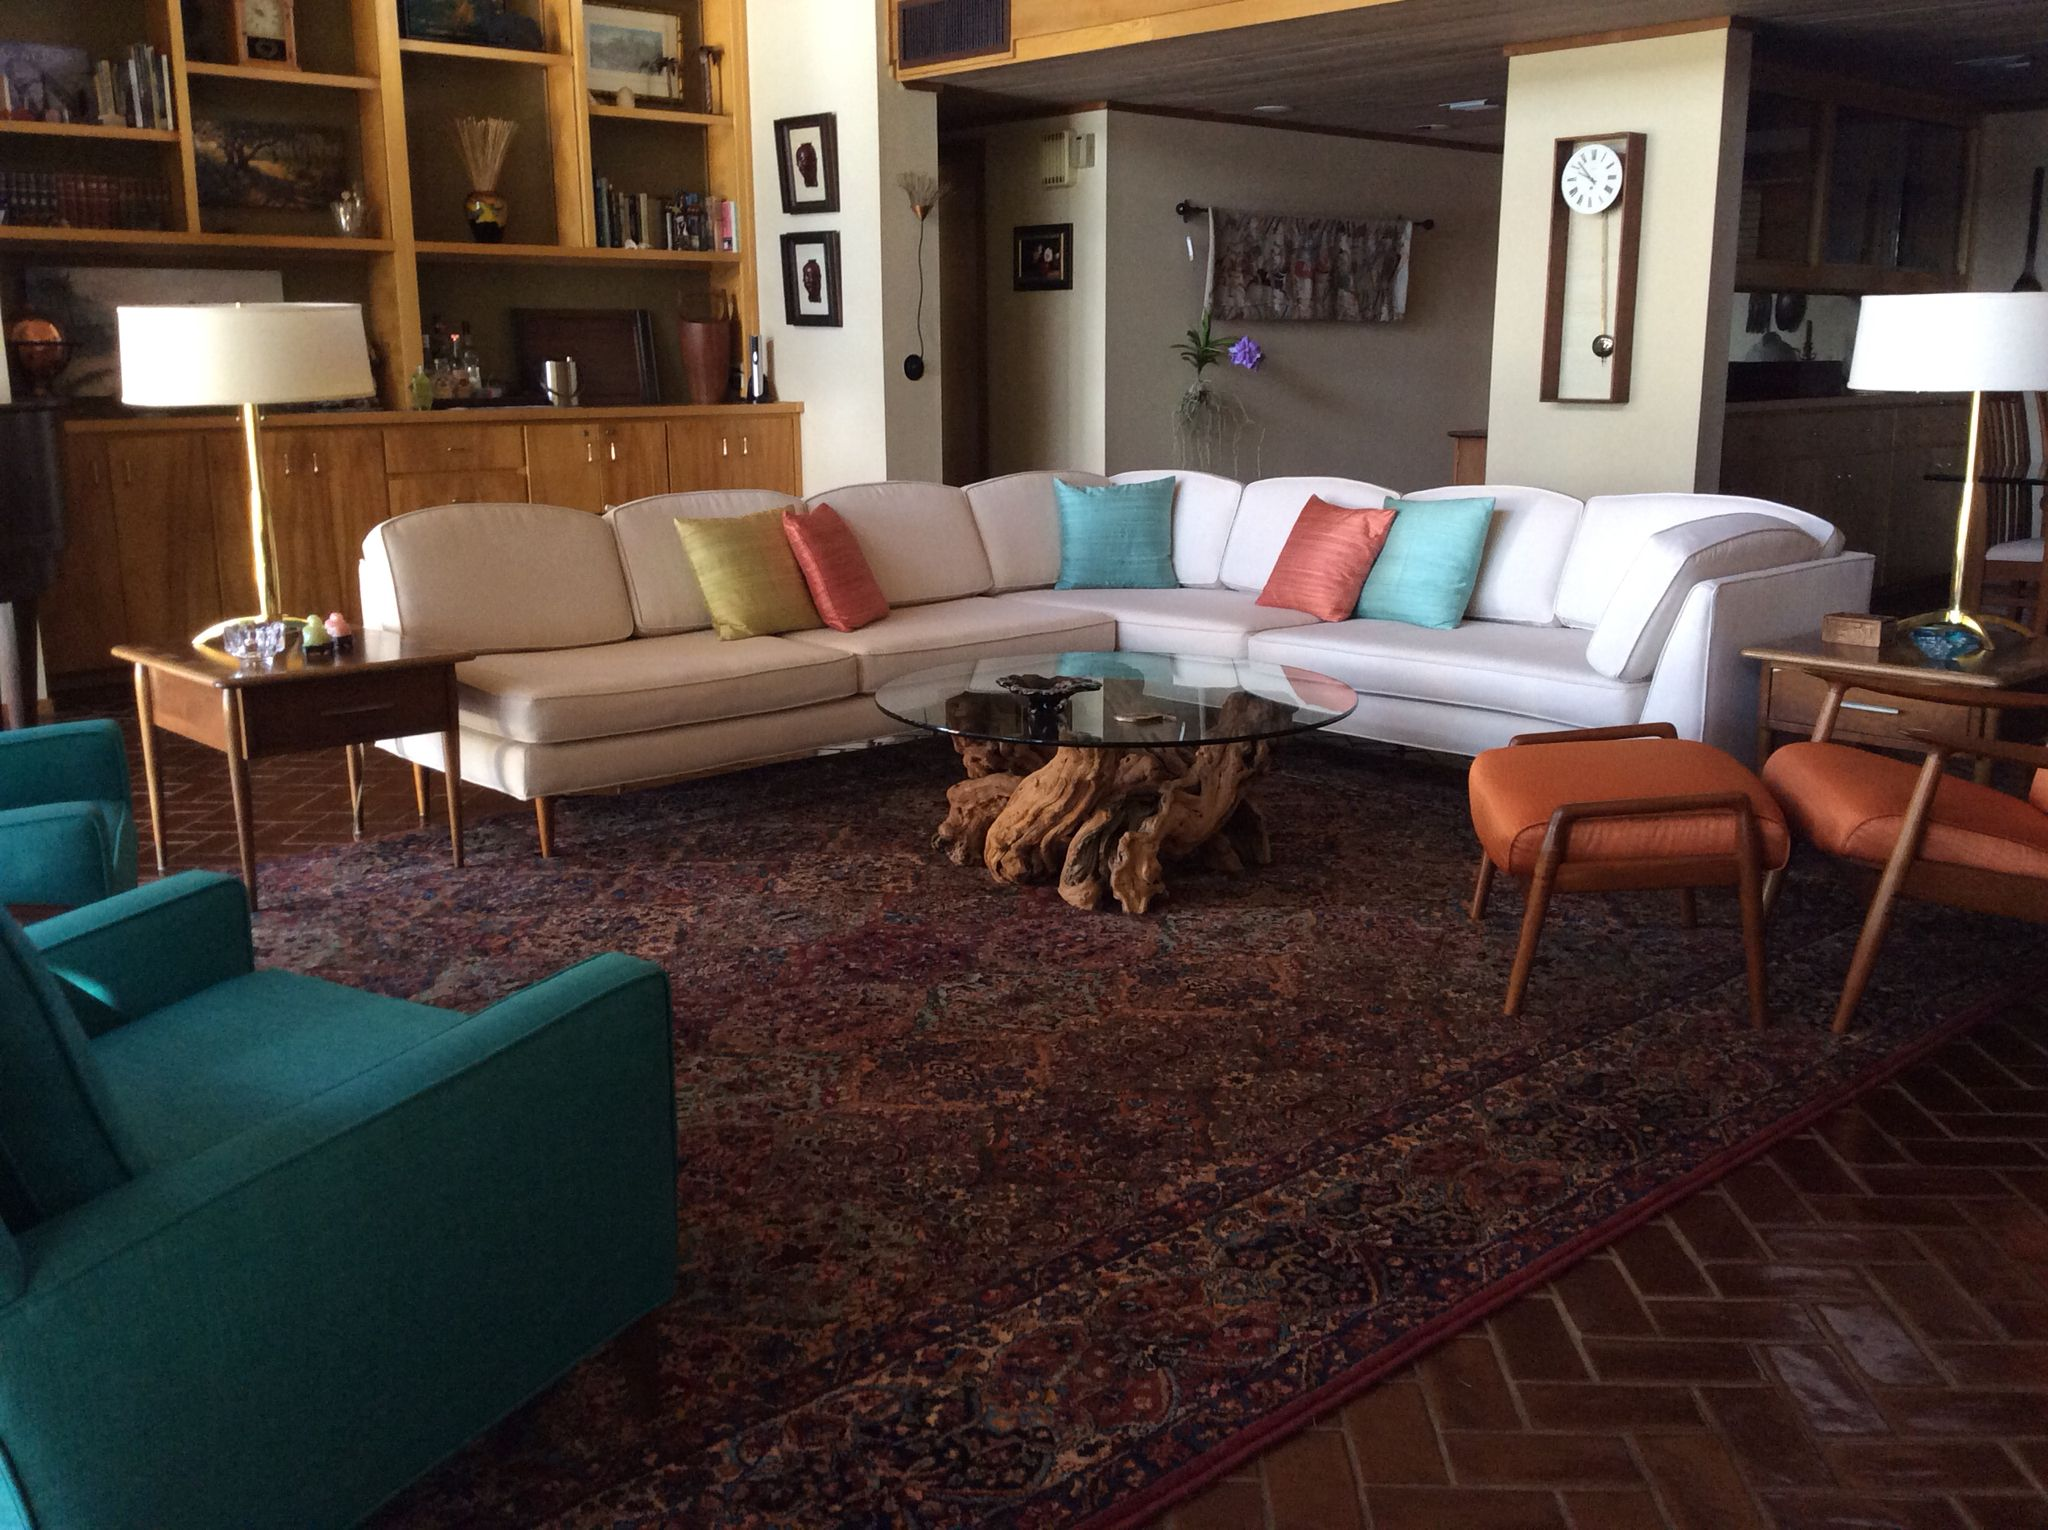 The Marzee Sectional Circa 1962 By Lancaster Furniture, Portland Maine